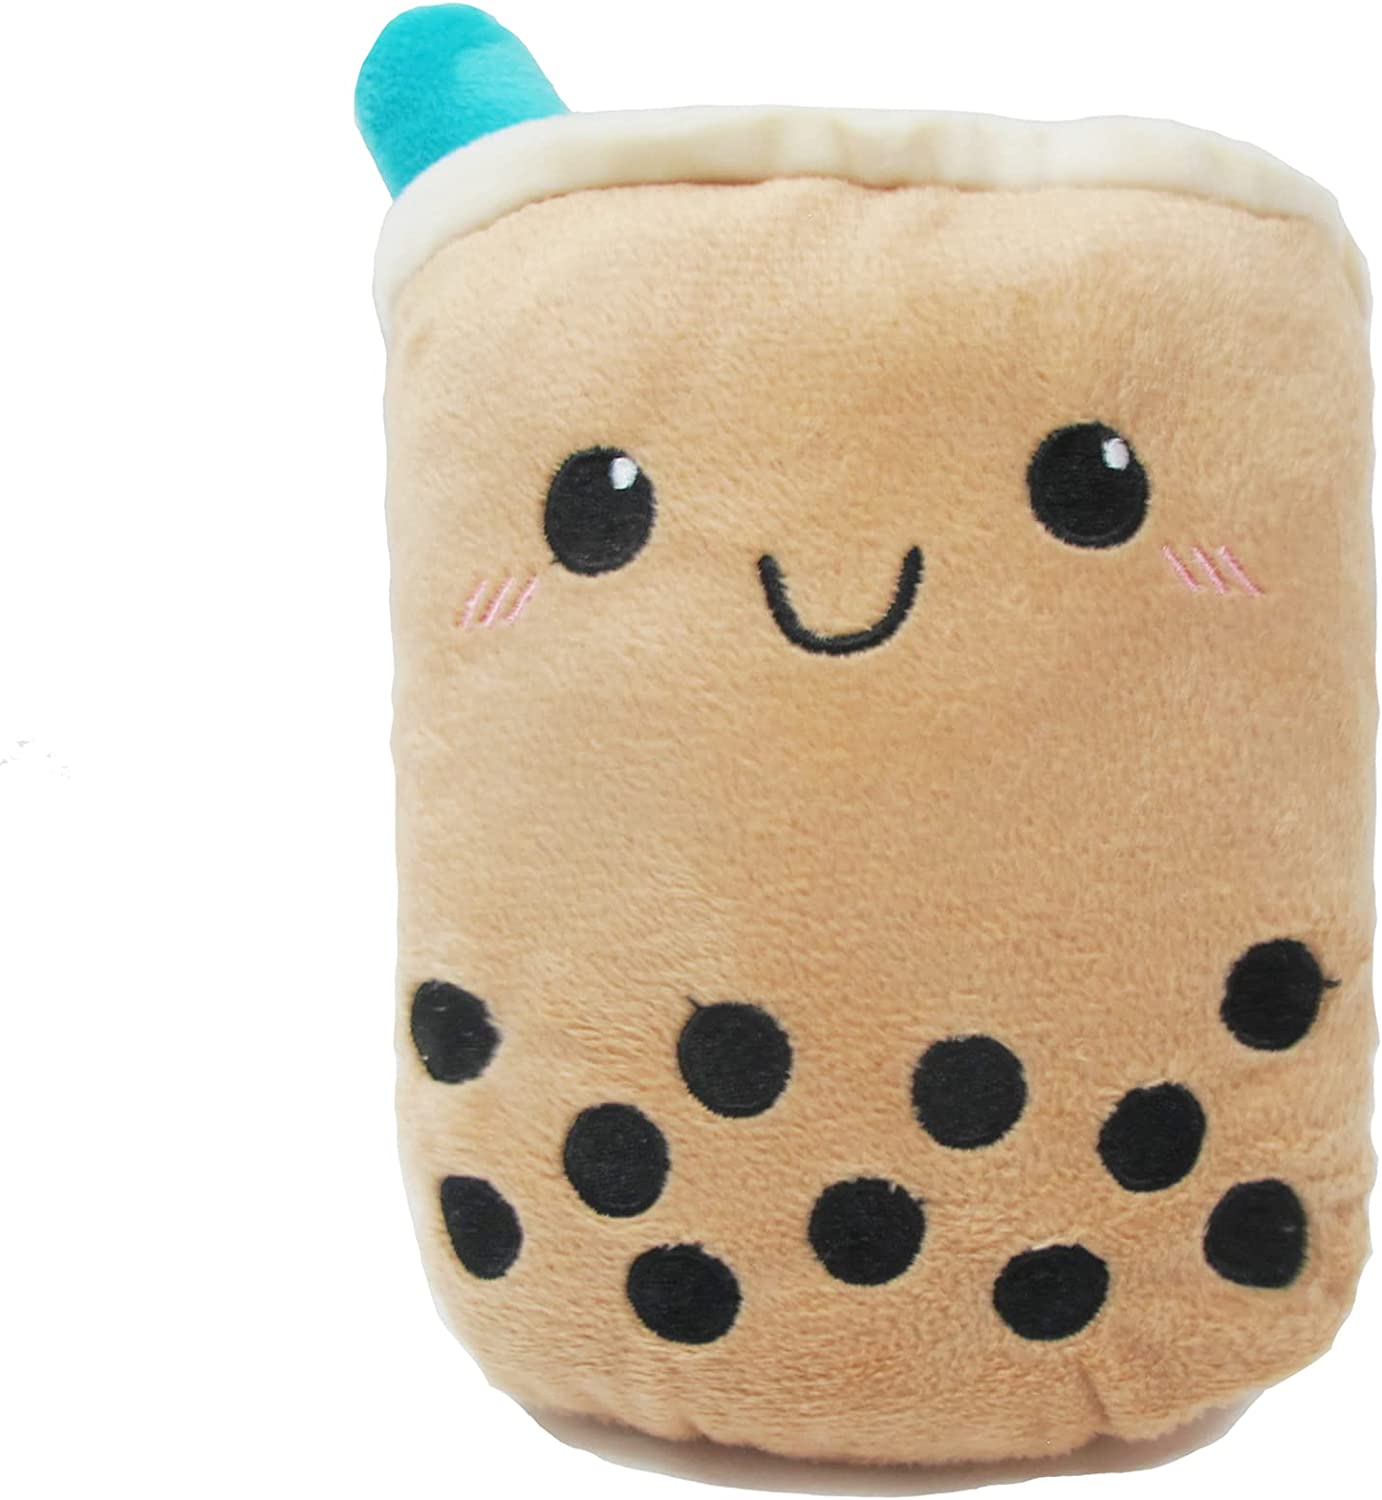 KkPP 2021 autumn and winter new Dog Toys Squeaky Gifts Chew for Design Milktea Me